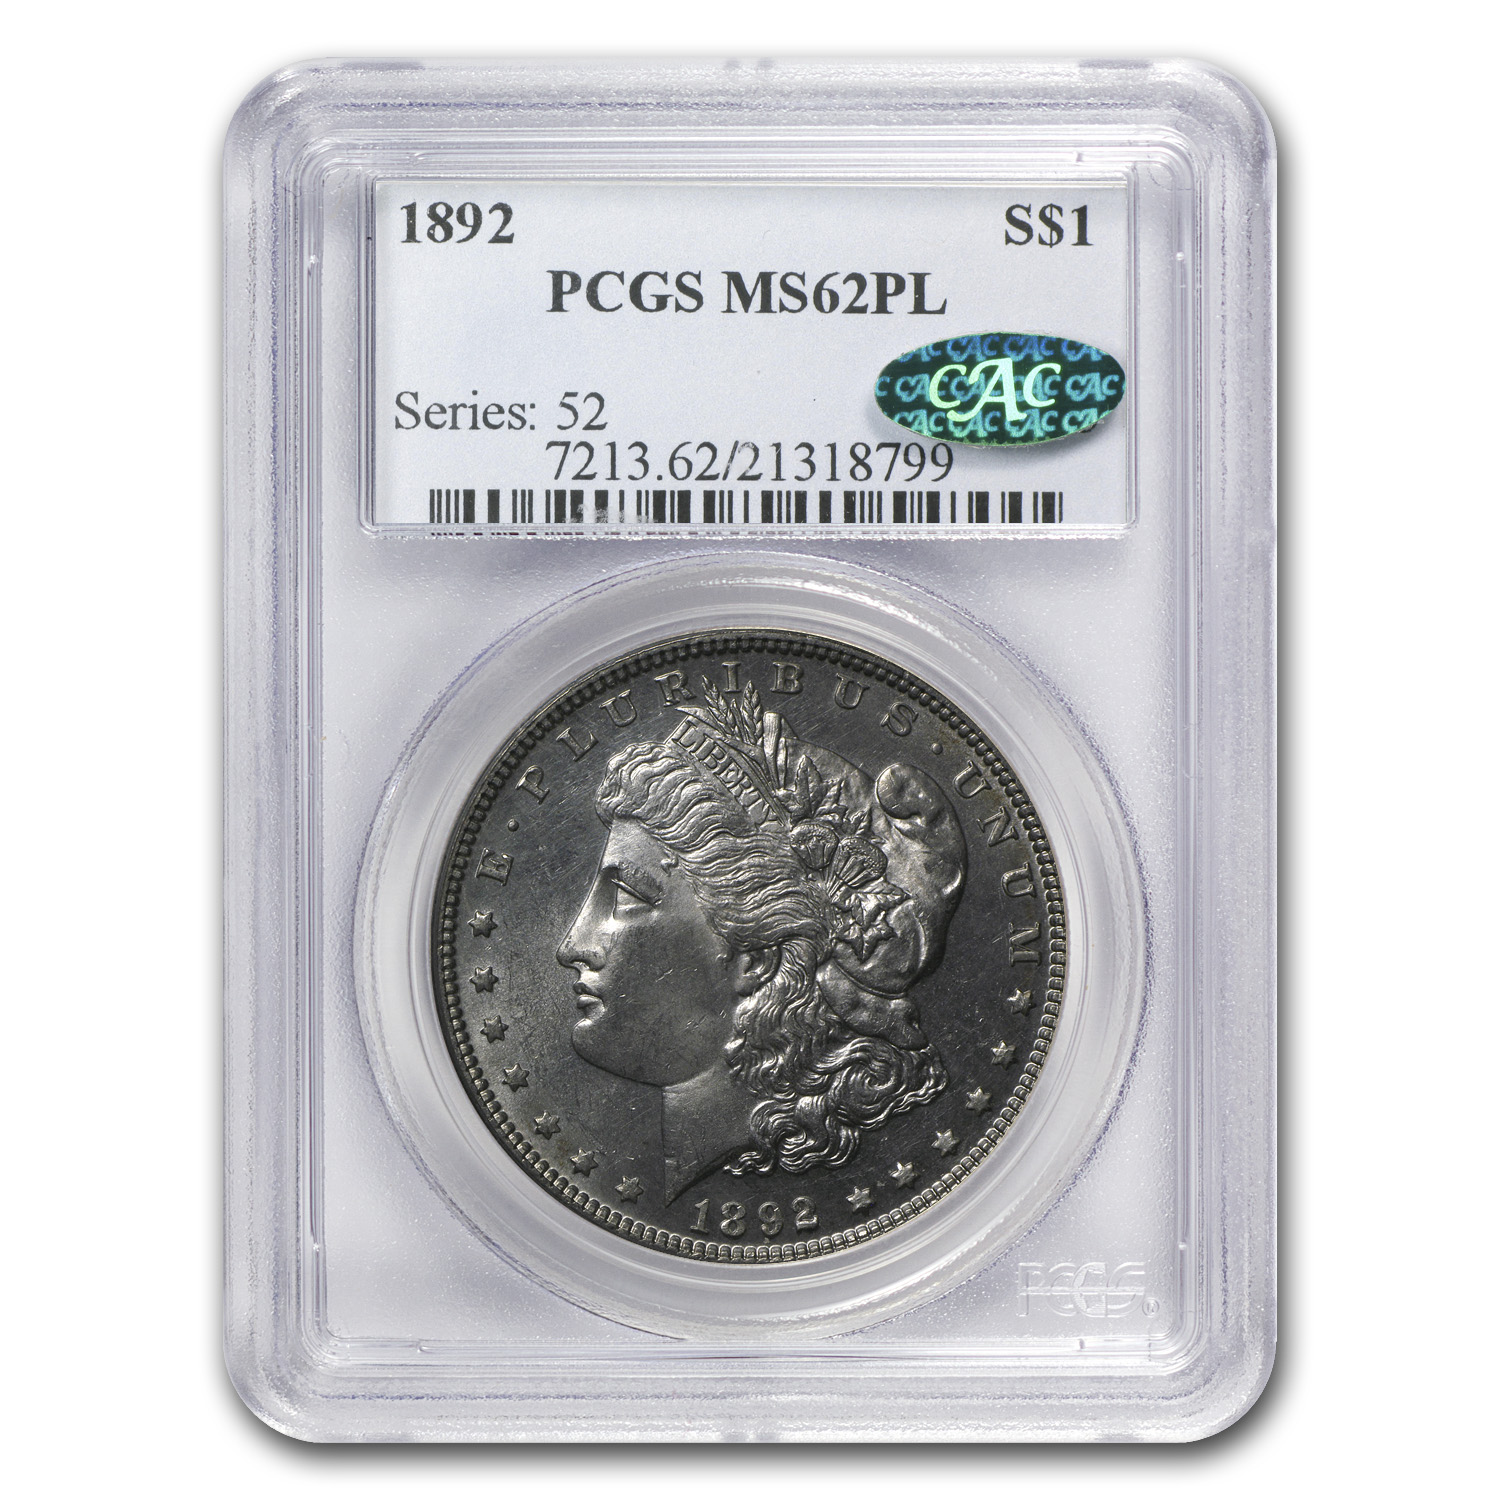 1892 Morgan Dollar - MS-62 PL Proof Like PCGS - CAC